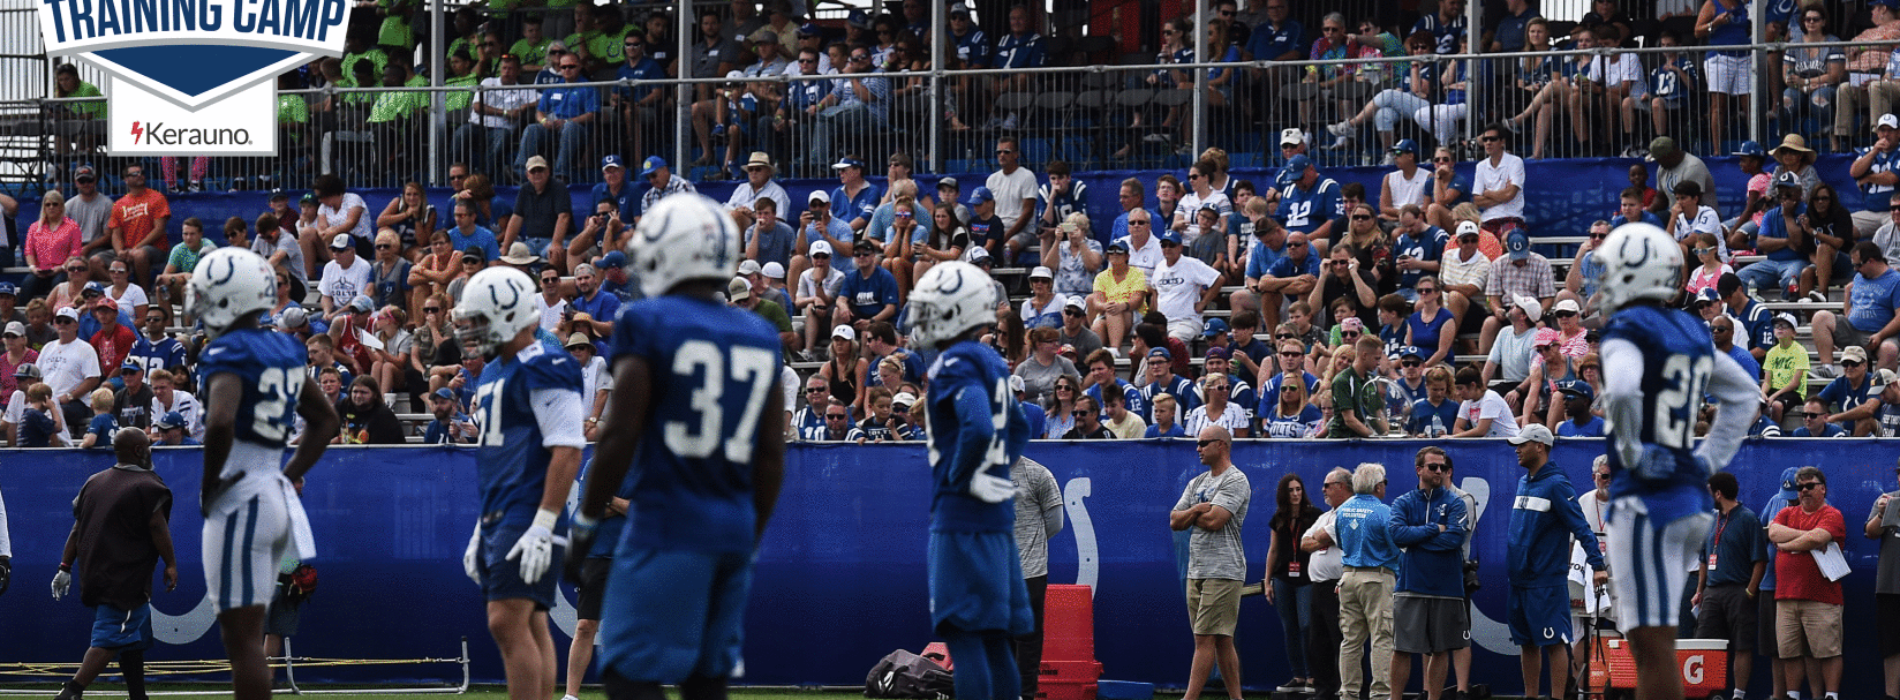 Colts training camp to kick off July 25th